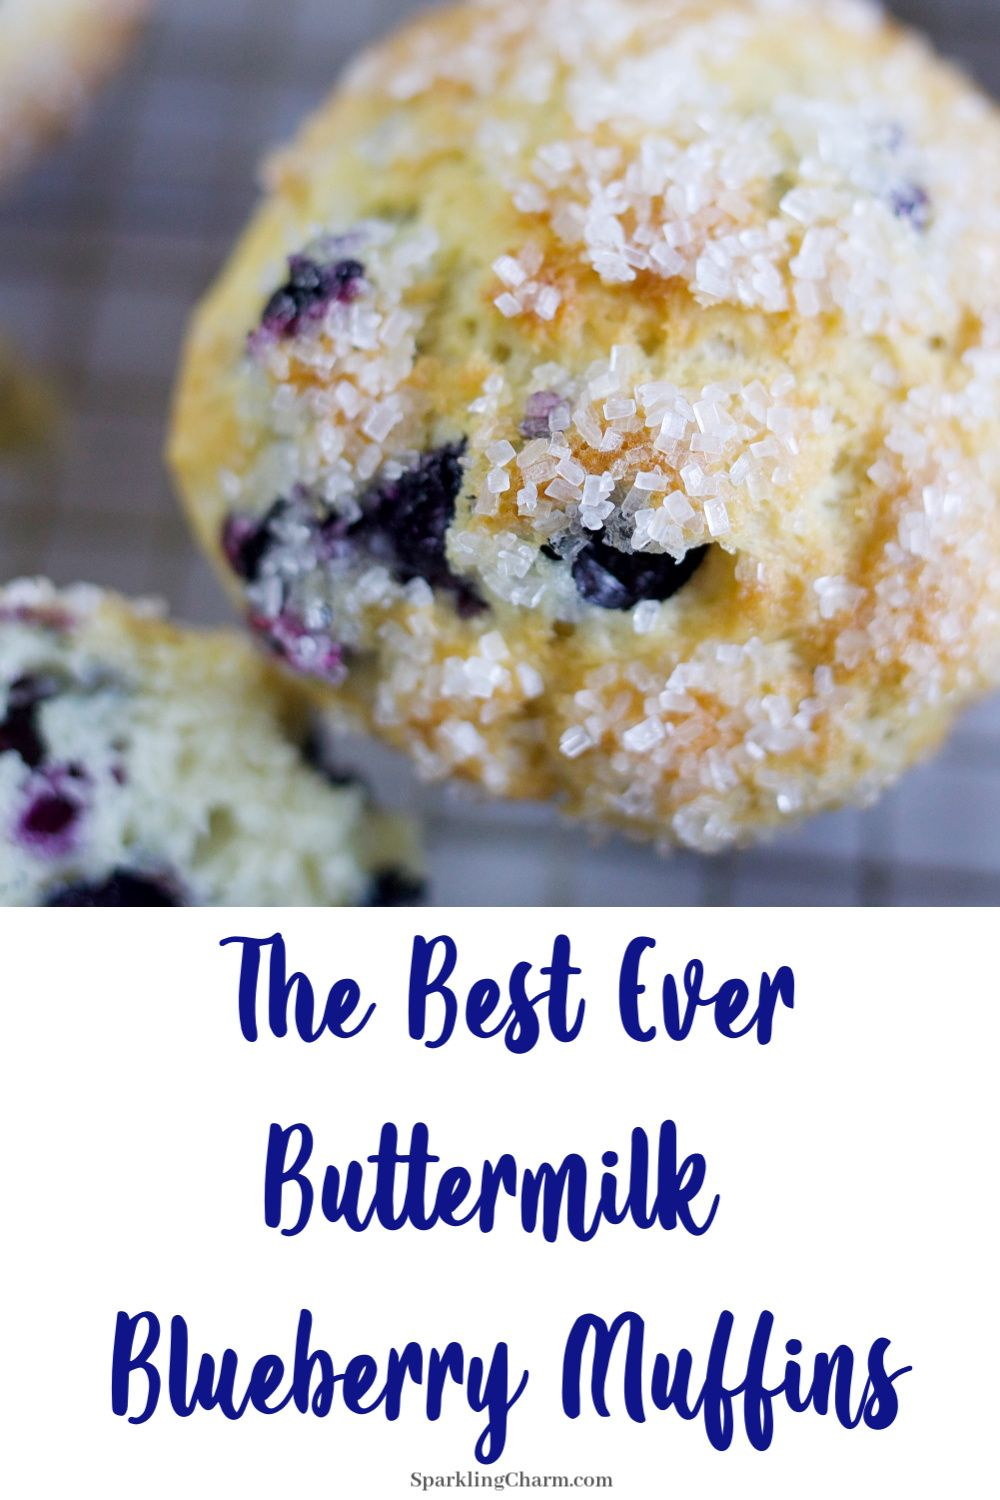 The Best Ever Homemade Buttermilk Blueberry Muffins Sparkling Charm Entertaining Lifestyle Tips Recipes Crafts Recipe In 2020 Blue Berry Muffins Homemade Buttermilk Best Blueberry Muffins